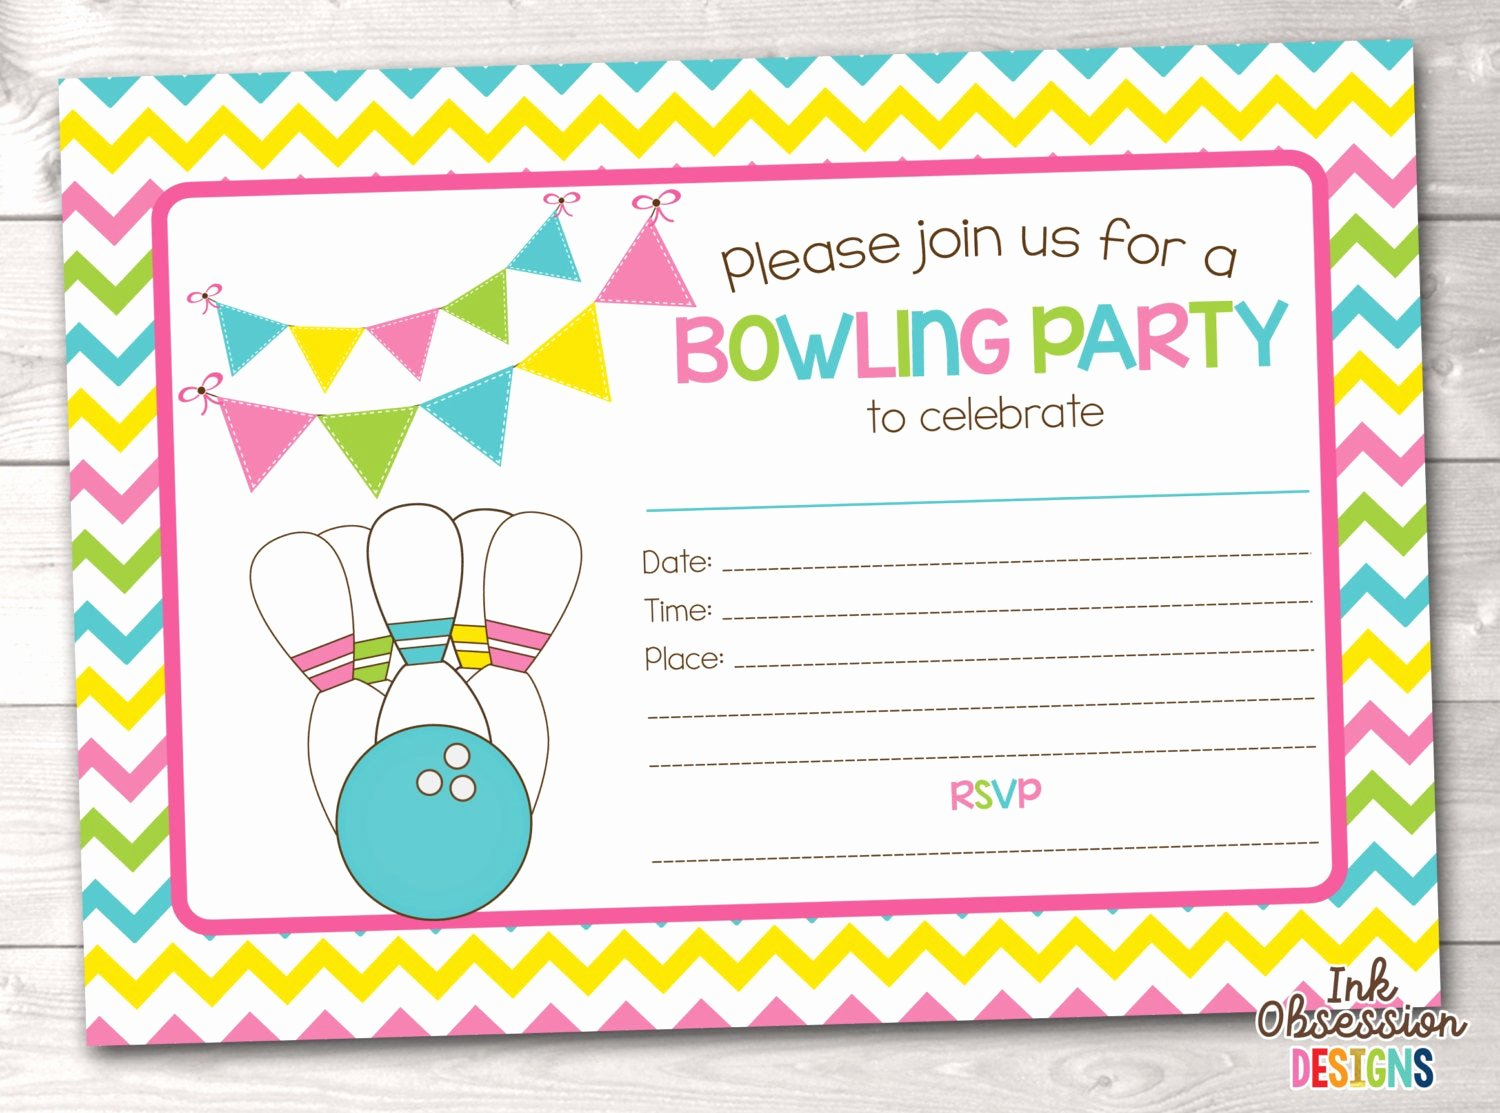 Bowling Party Invitation Template Best Of Printable Bowling Party Invitation Fill In the Blank Birthday